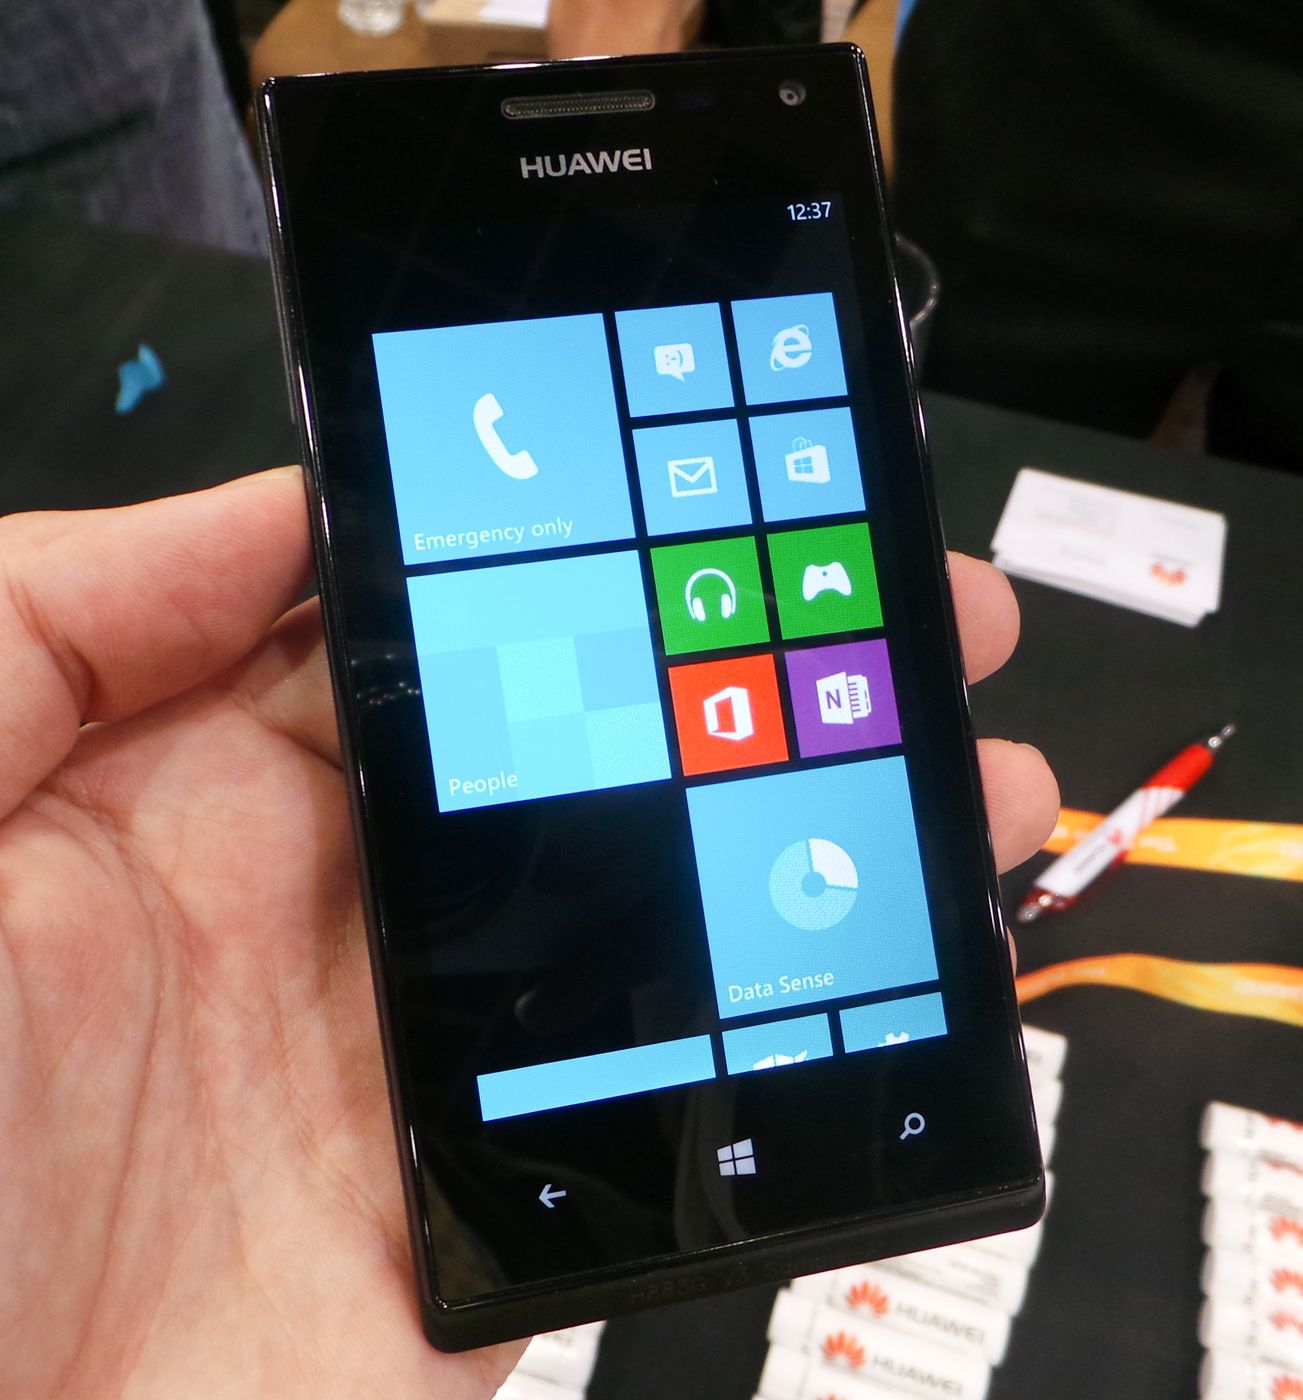 Hands On with the Huawei Ascend W1, Ascend D2, and Ascend Mate